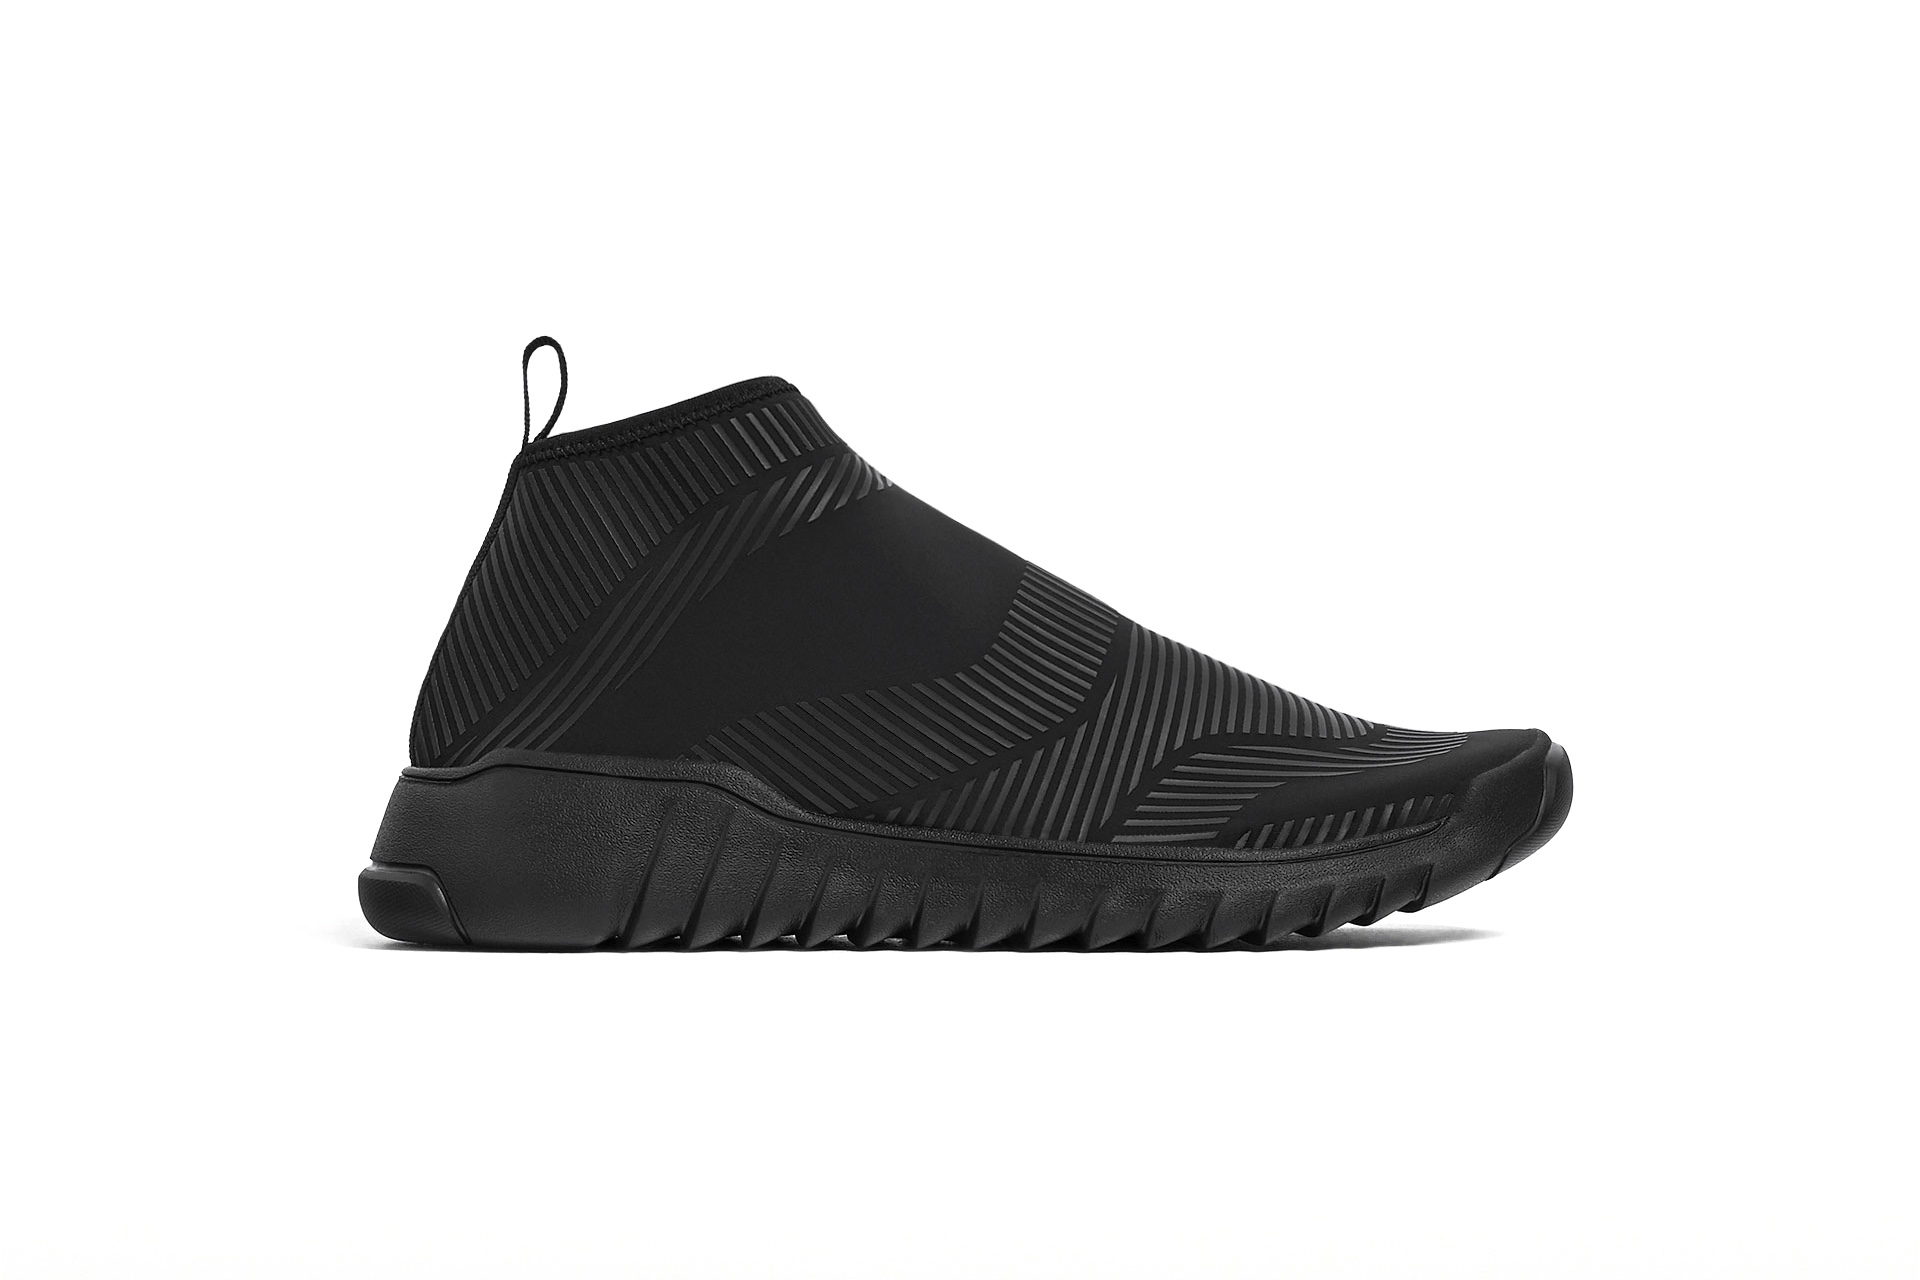 Zara Release Balenciaga Speed Trainer And adidas Originals